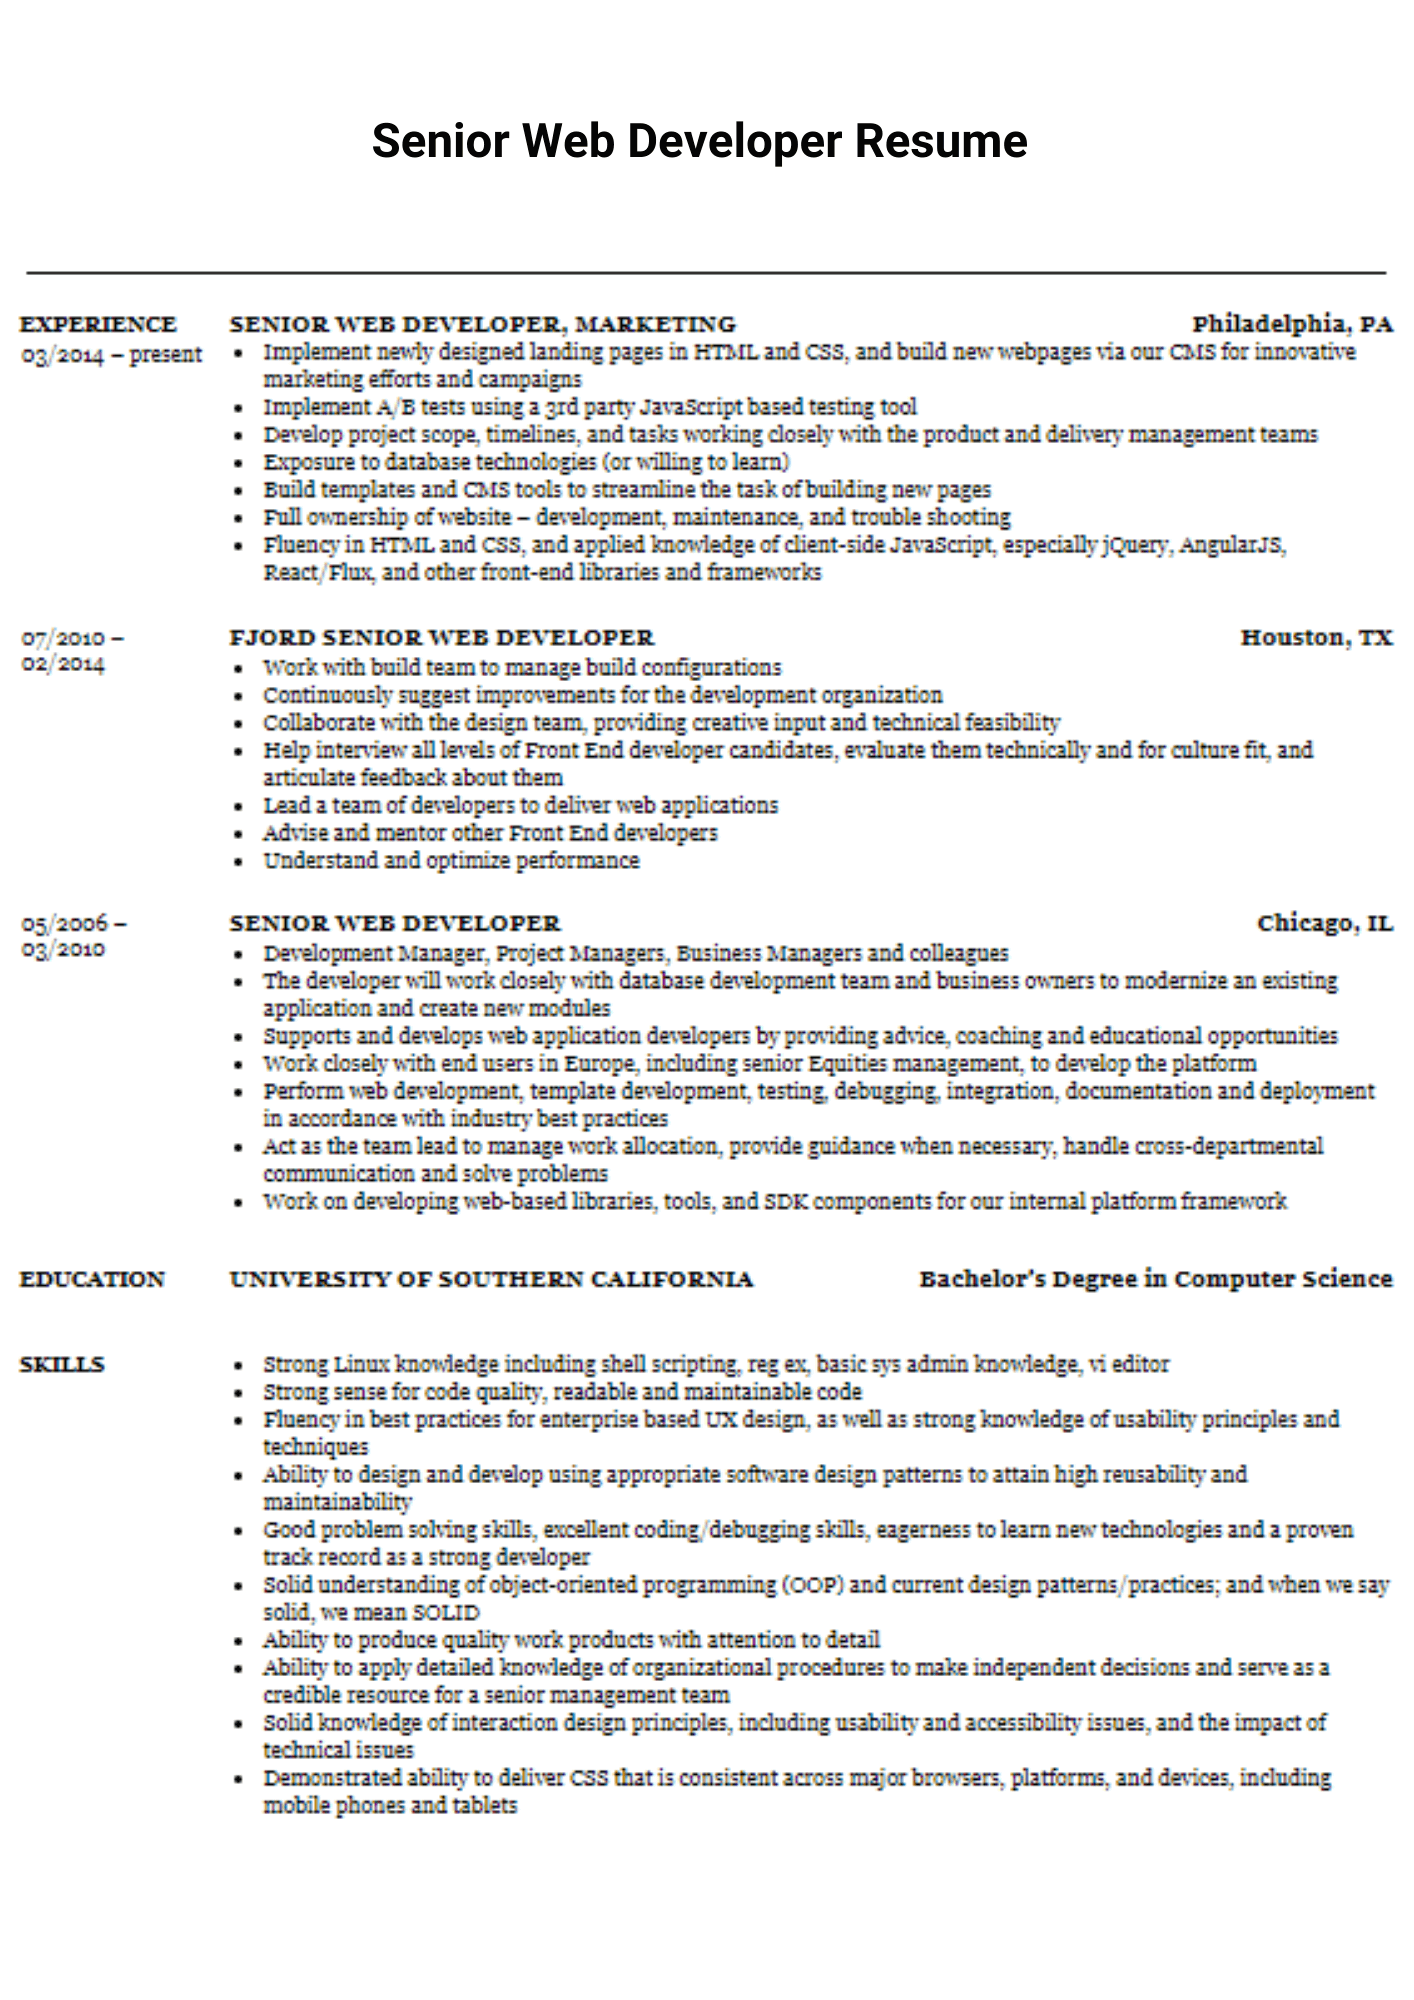 senior web developer resume with experience in react